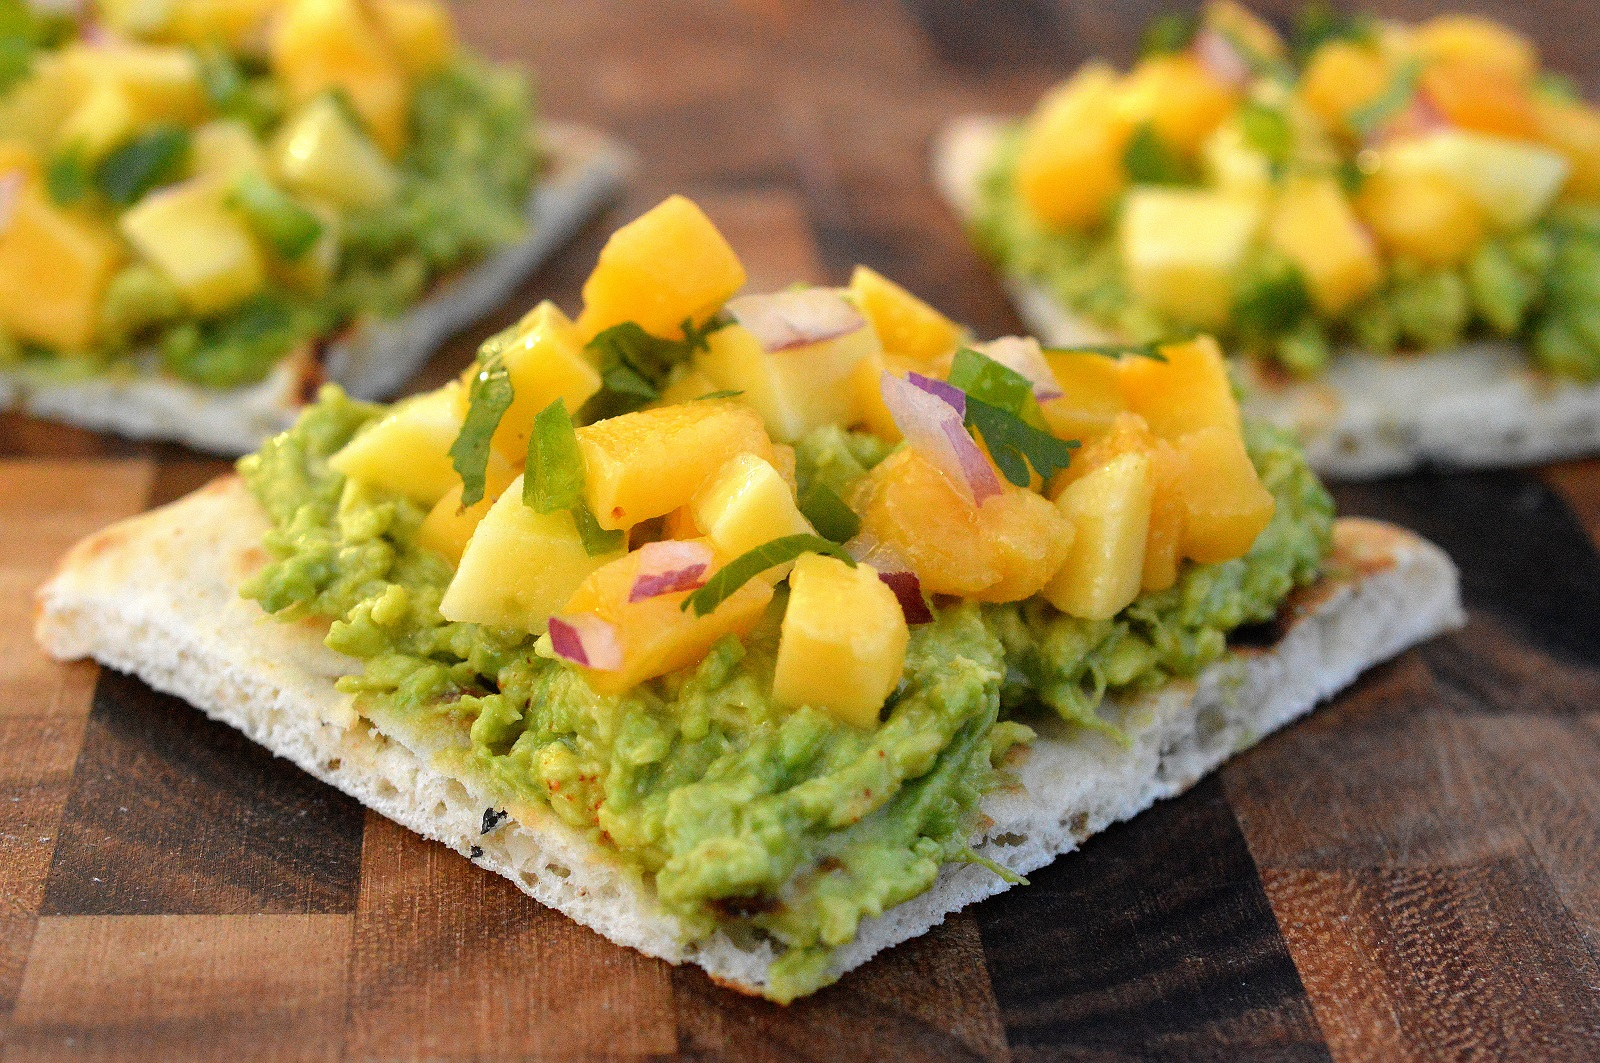 Avocado Toast With Mango